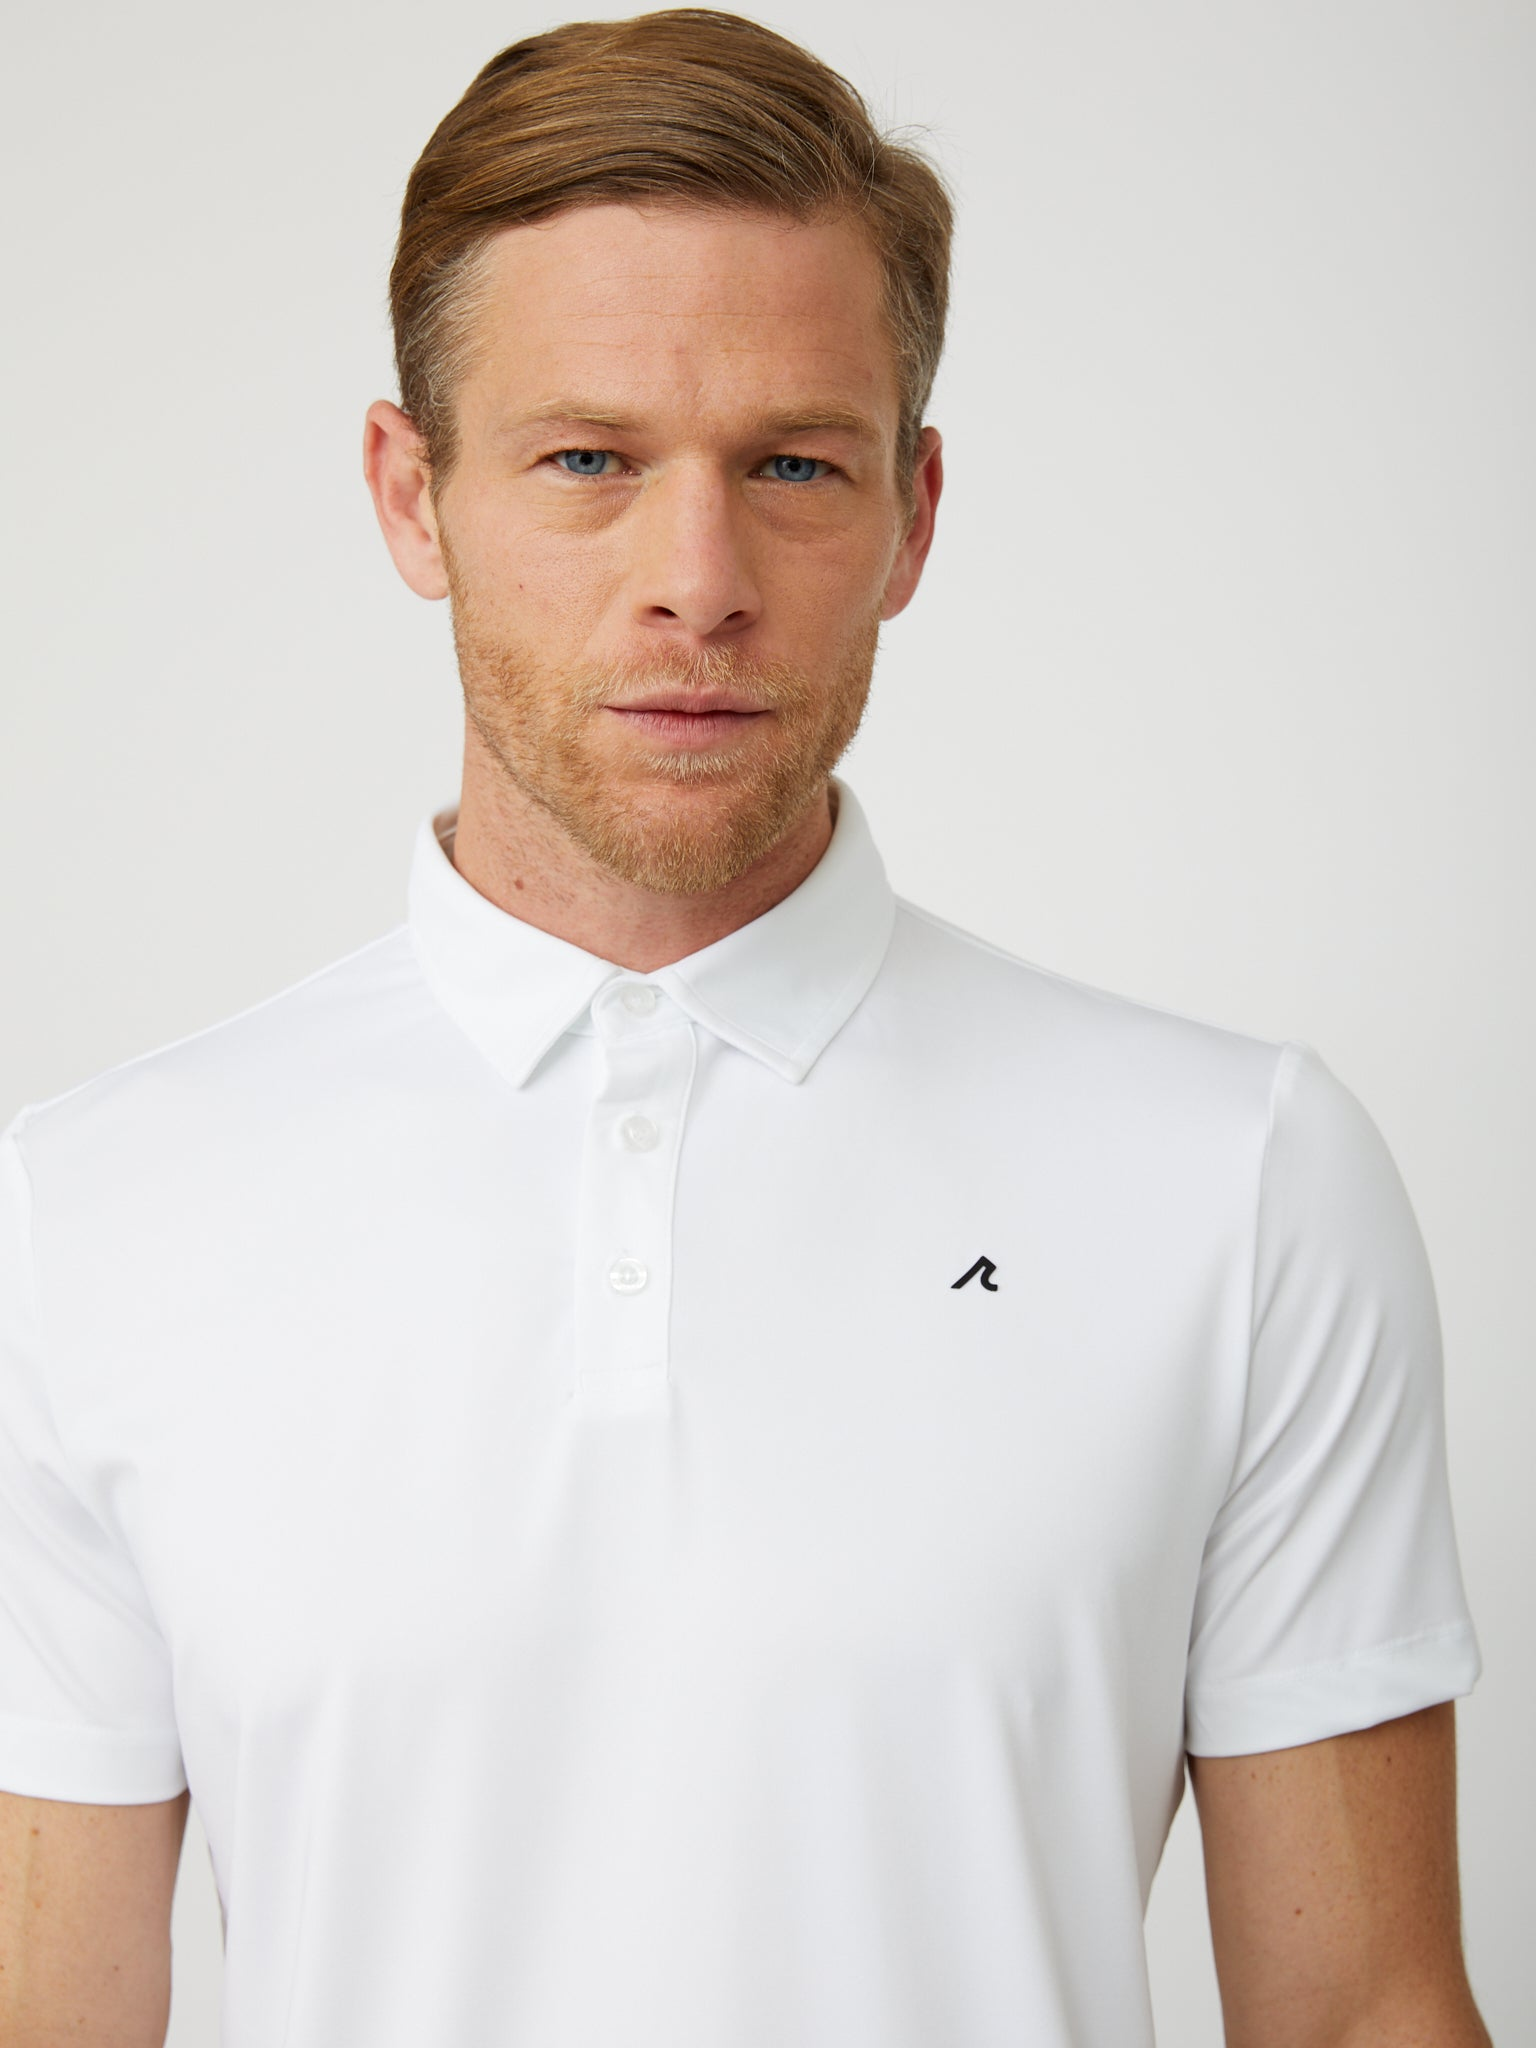 Degrom Polo in White/Black